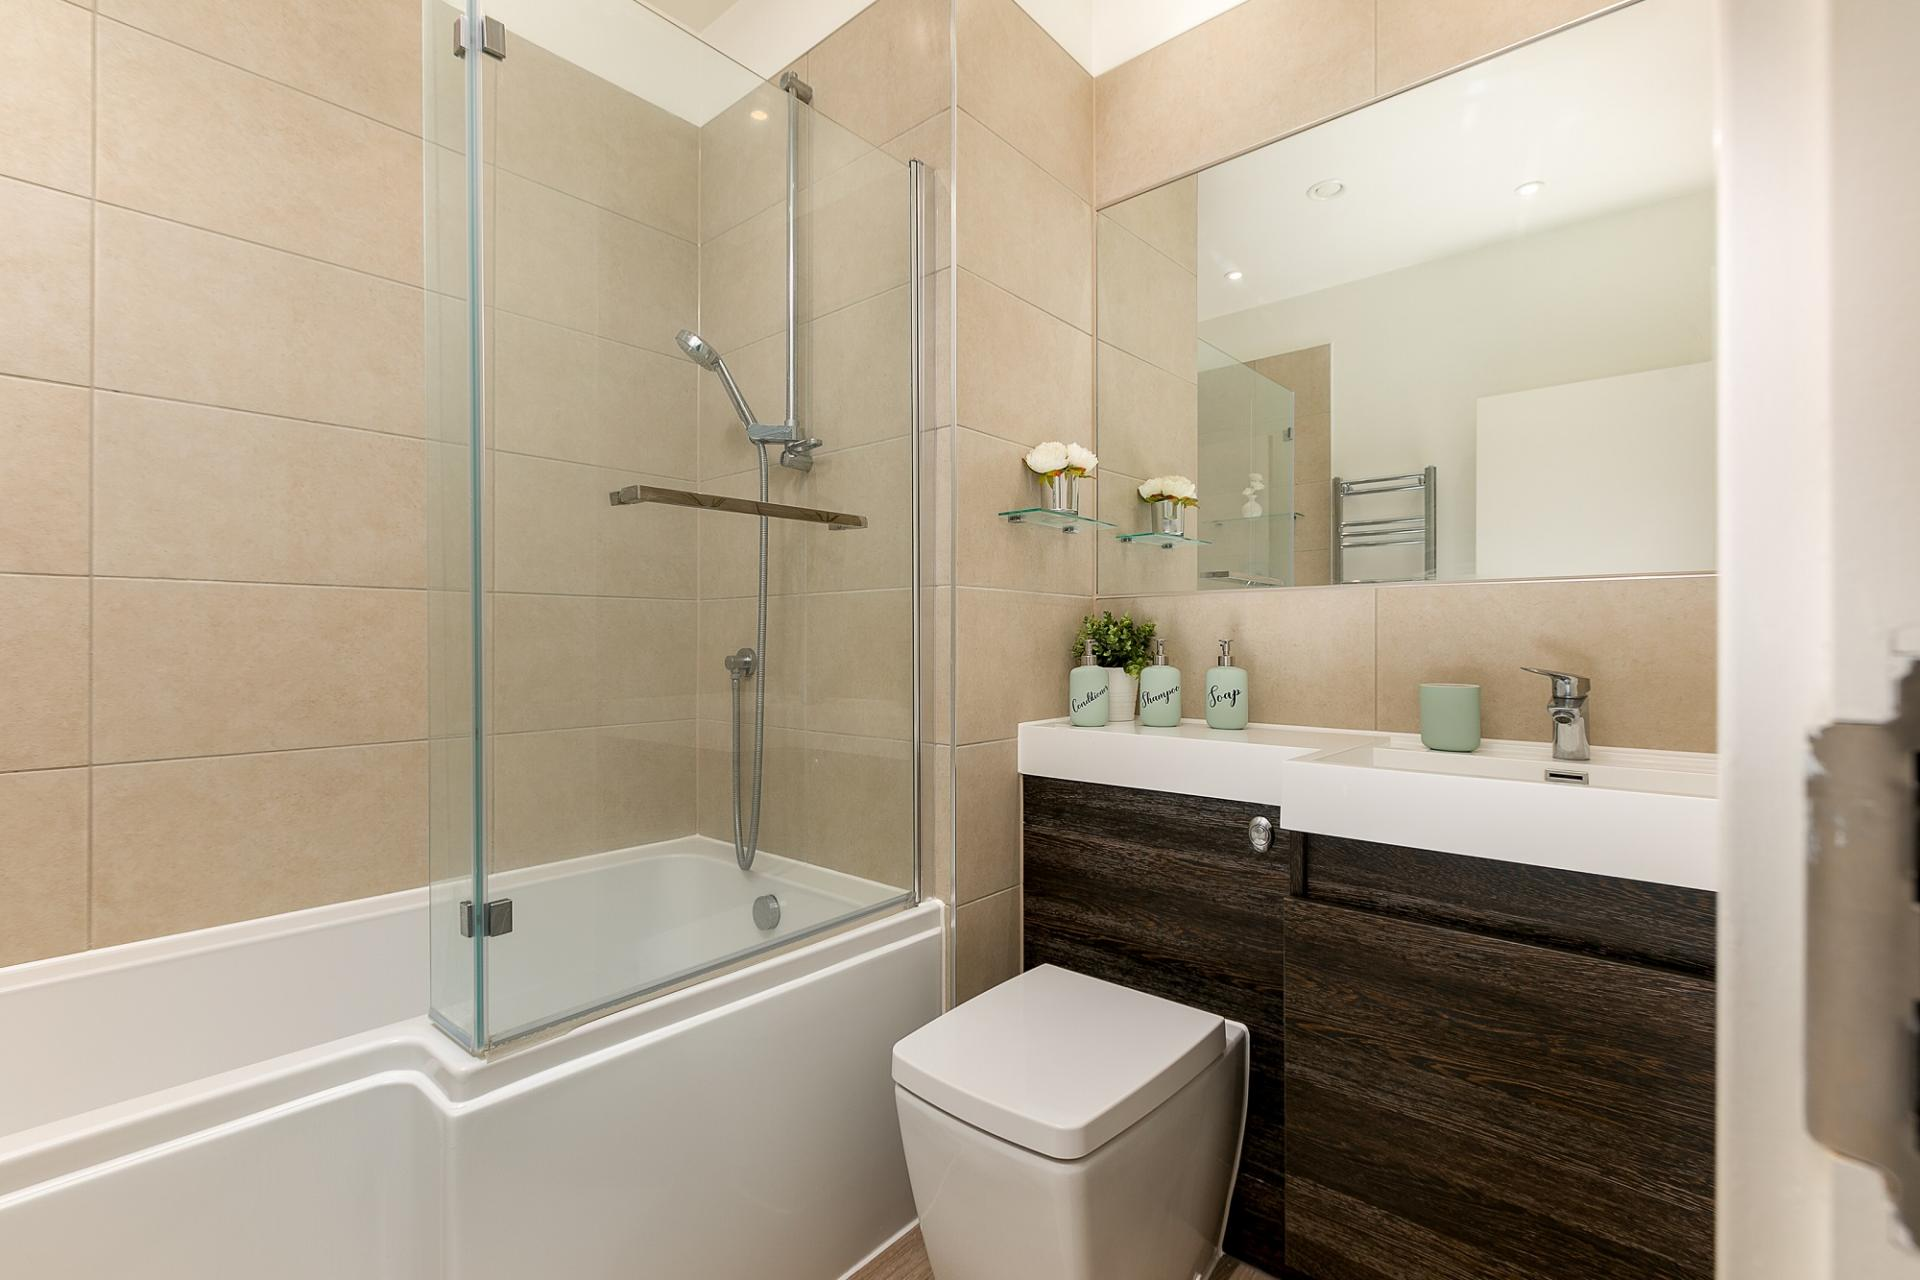 Bathroom at Kings Reach Apartment, Centre, Reading - Citybase Apartments